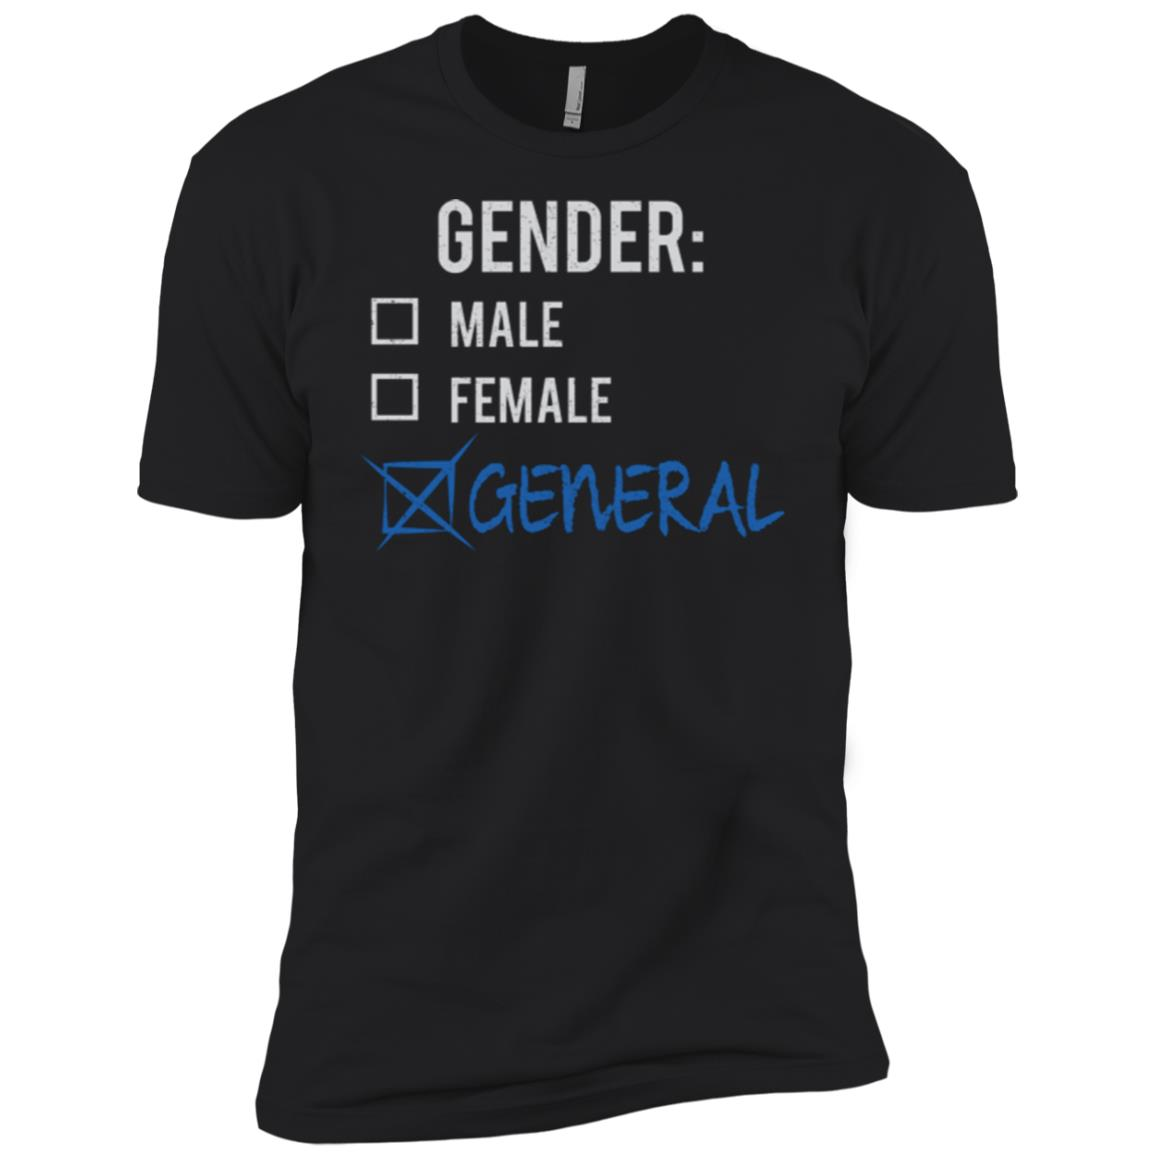 Male Female General Gender Nonbinary Trans Men Short Sleeve T-Shirt